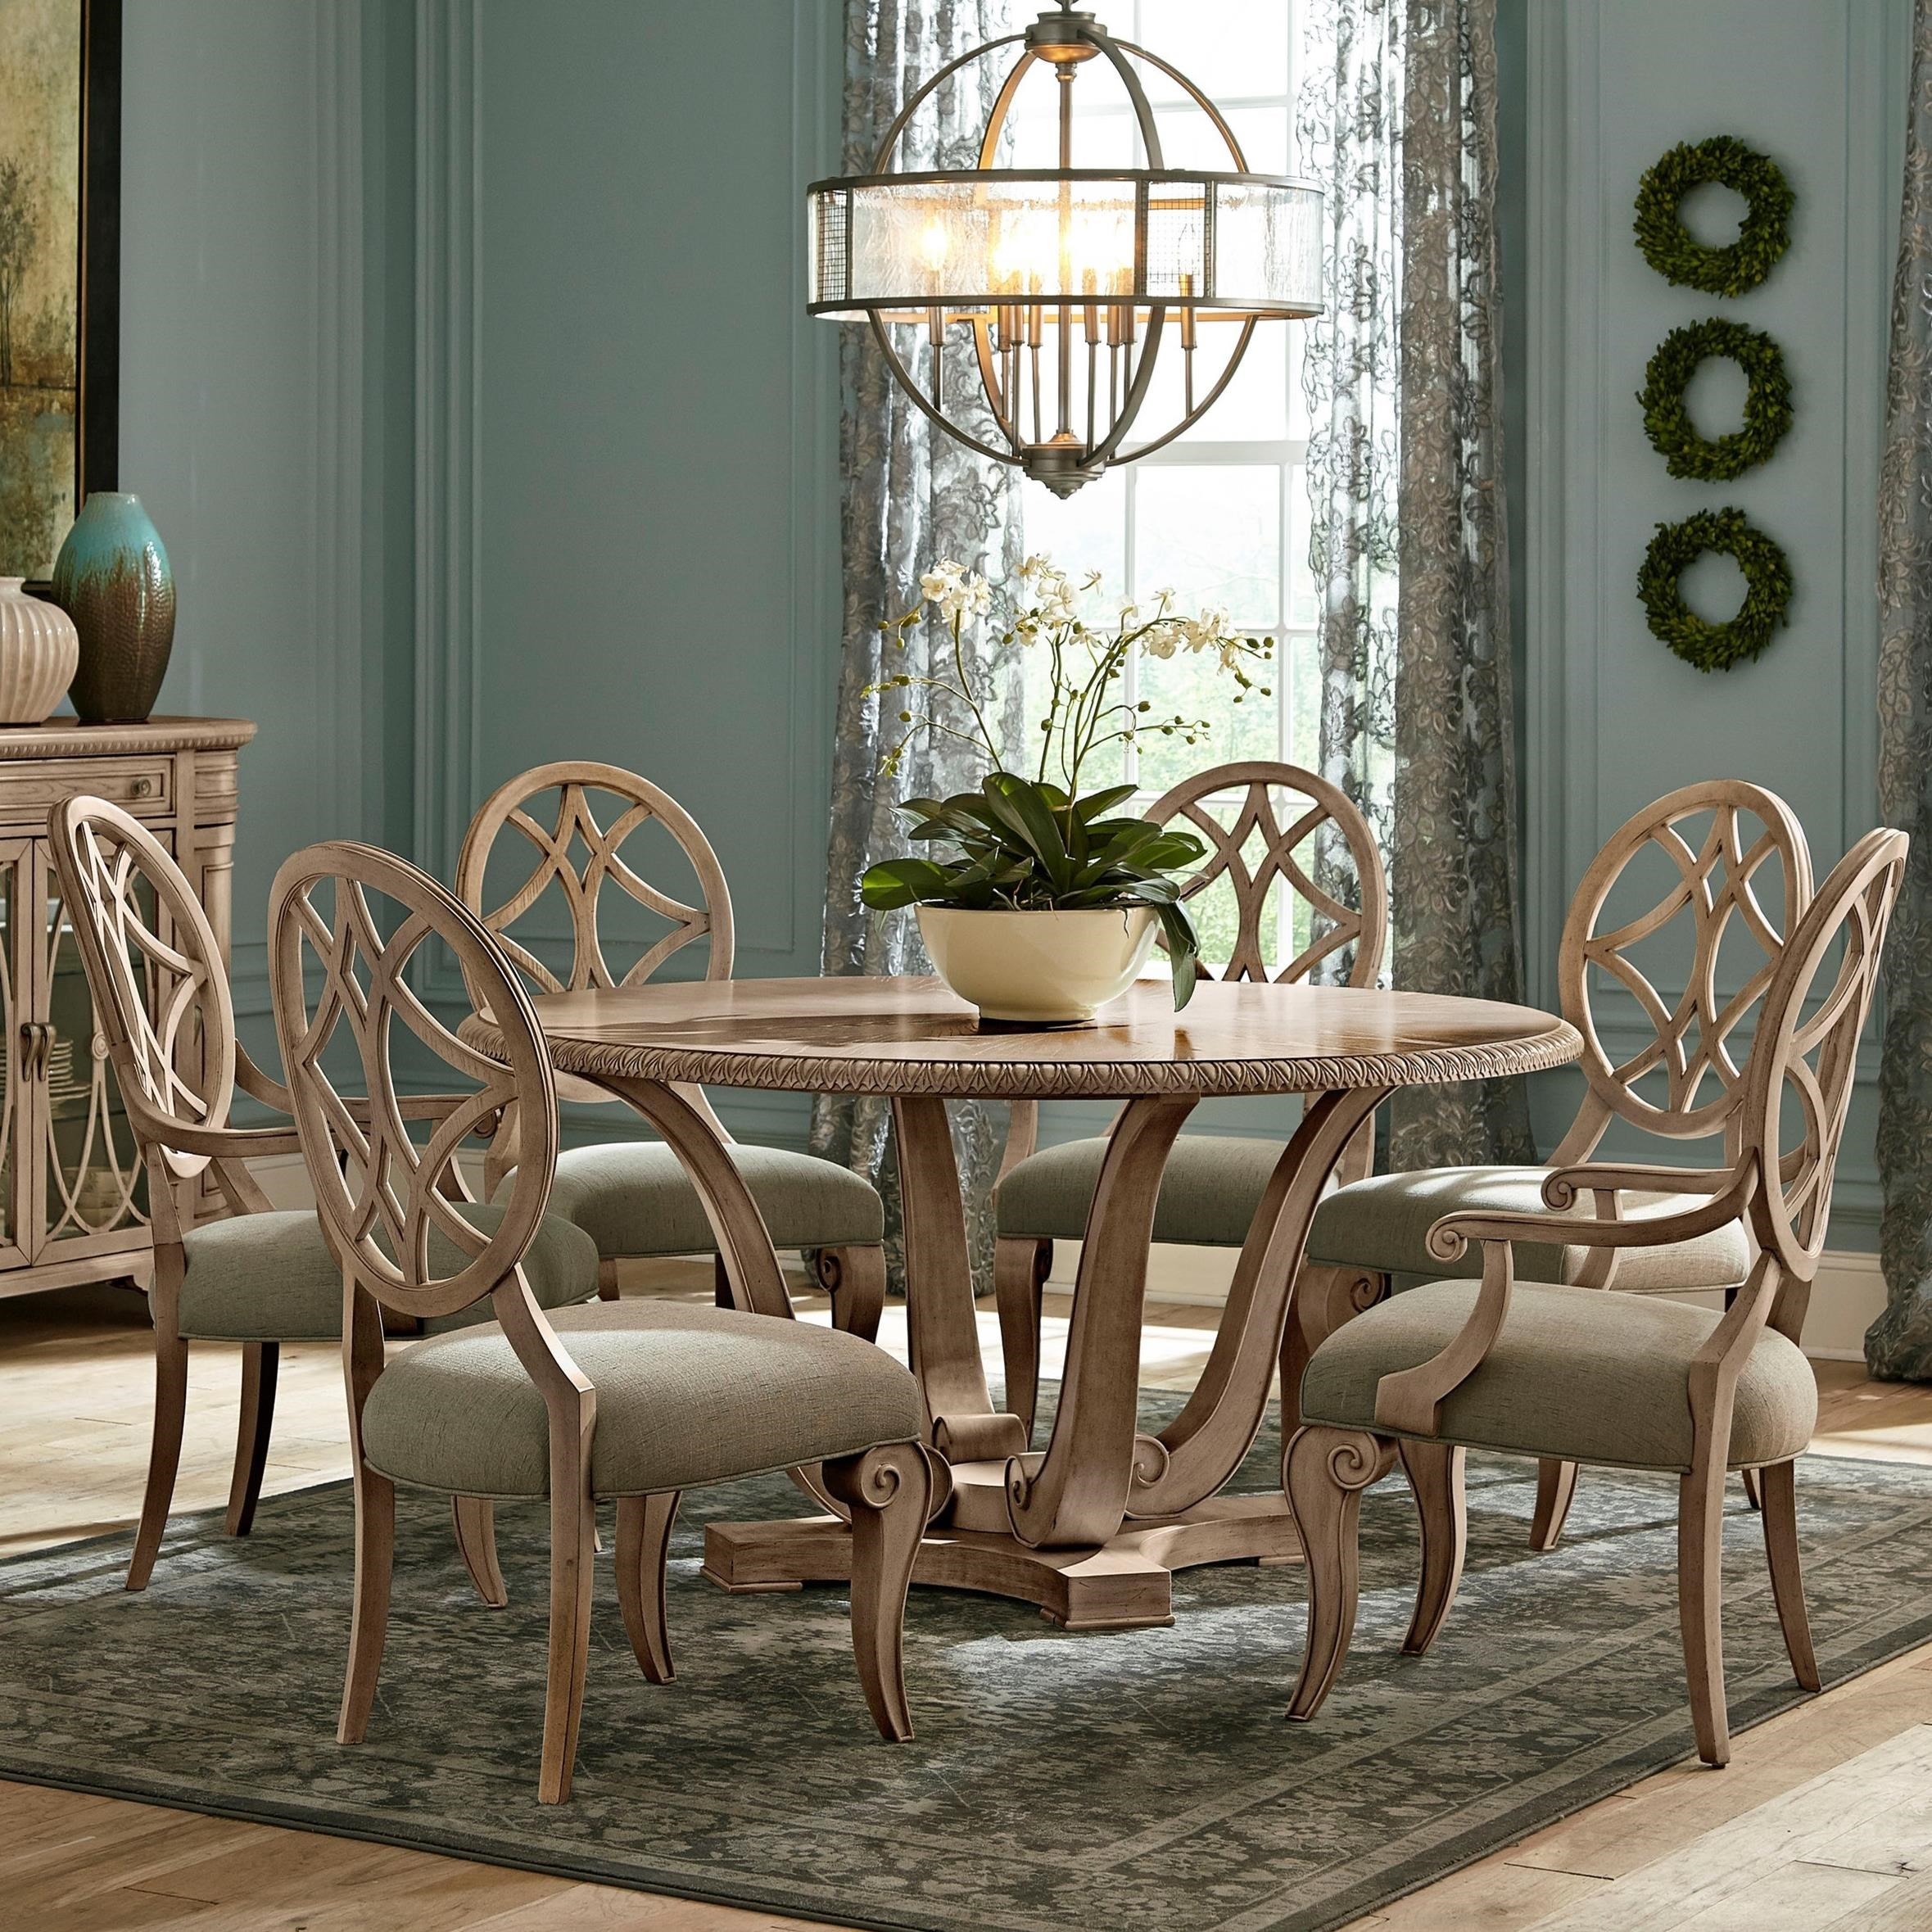 Jasper County Seven Piece Vintage Dining Set with Dogwood Round Table by  Trisha Yearwood Home Collection by Klaussner at Furniture Barn